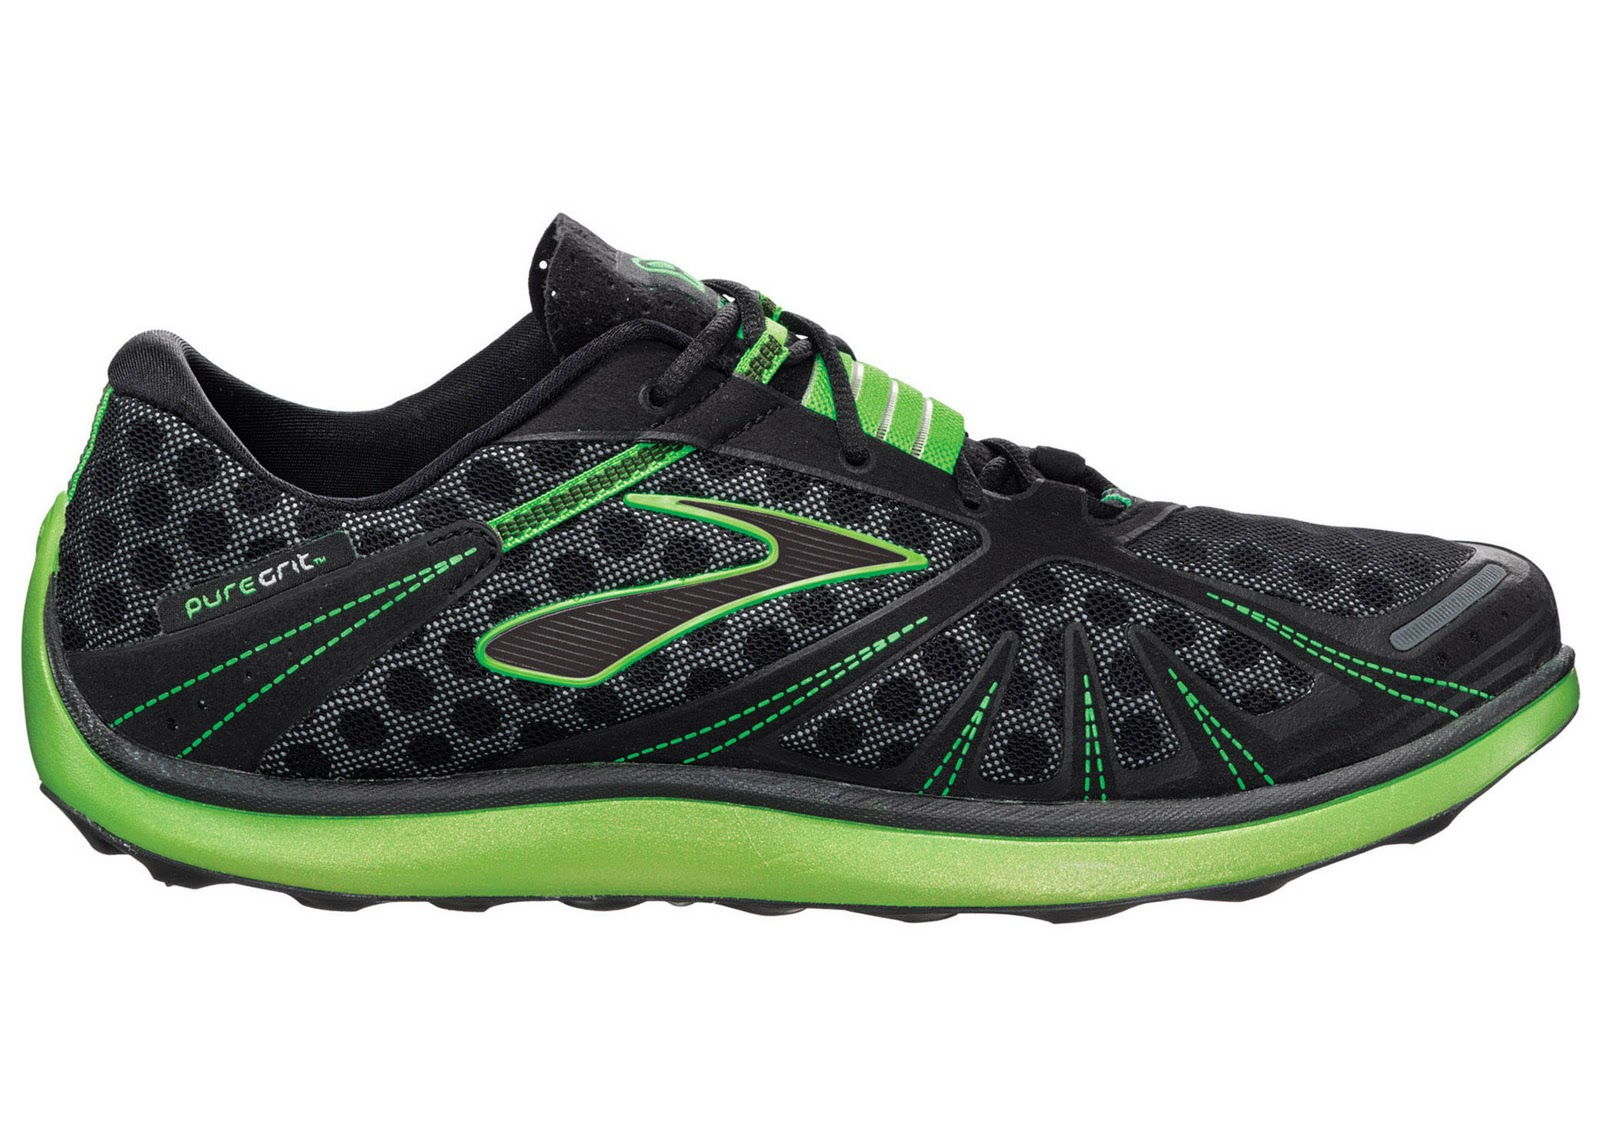 Brooks Pure Grit Running Shoes